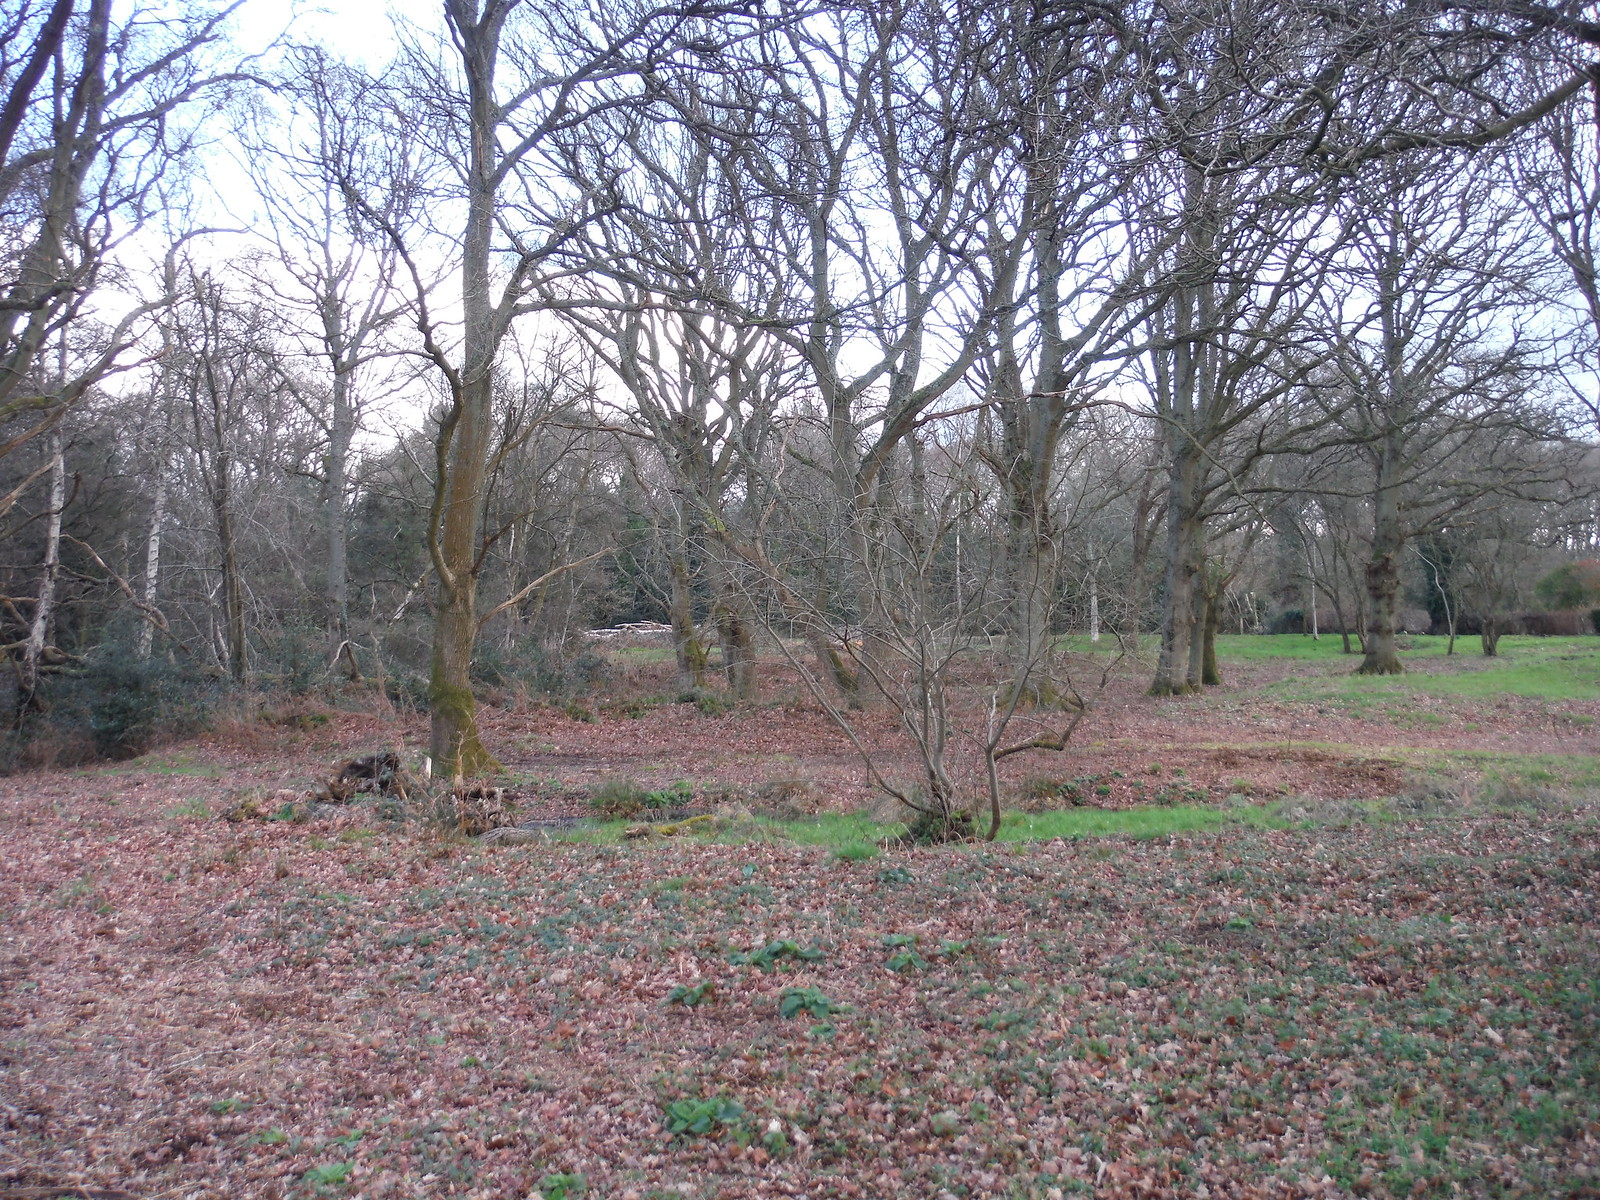 Clearing in King's Copse, Stanford Dingley SWC Walk 117 Aldermaston to Woolhampton (via Stanford Dingley)